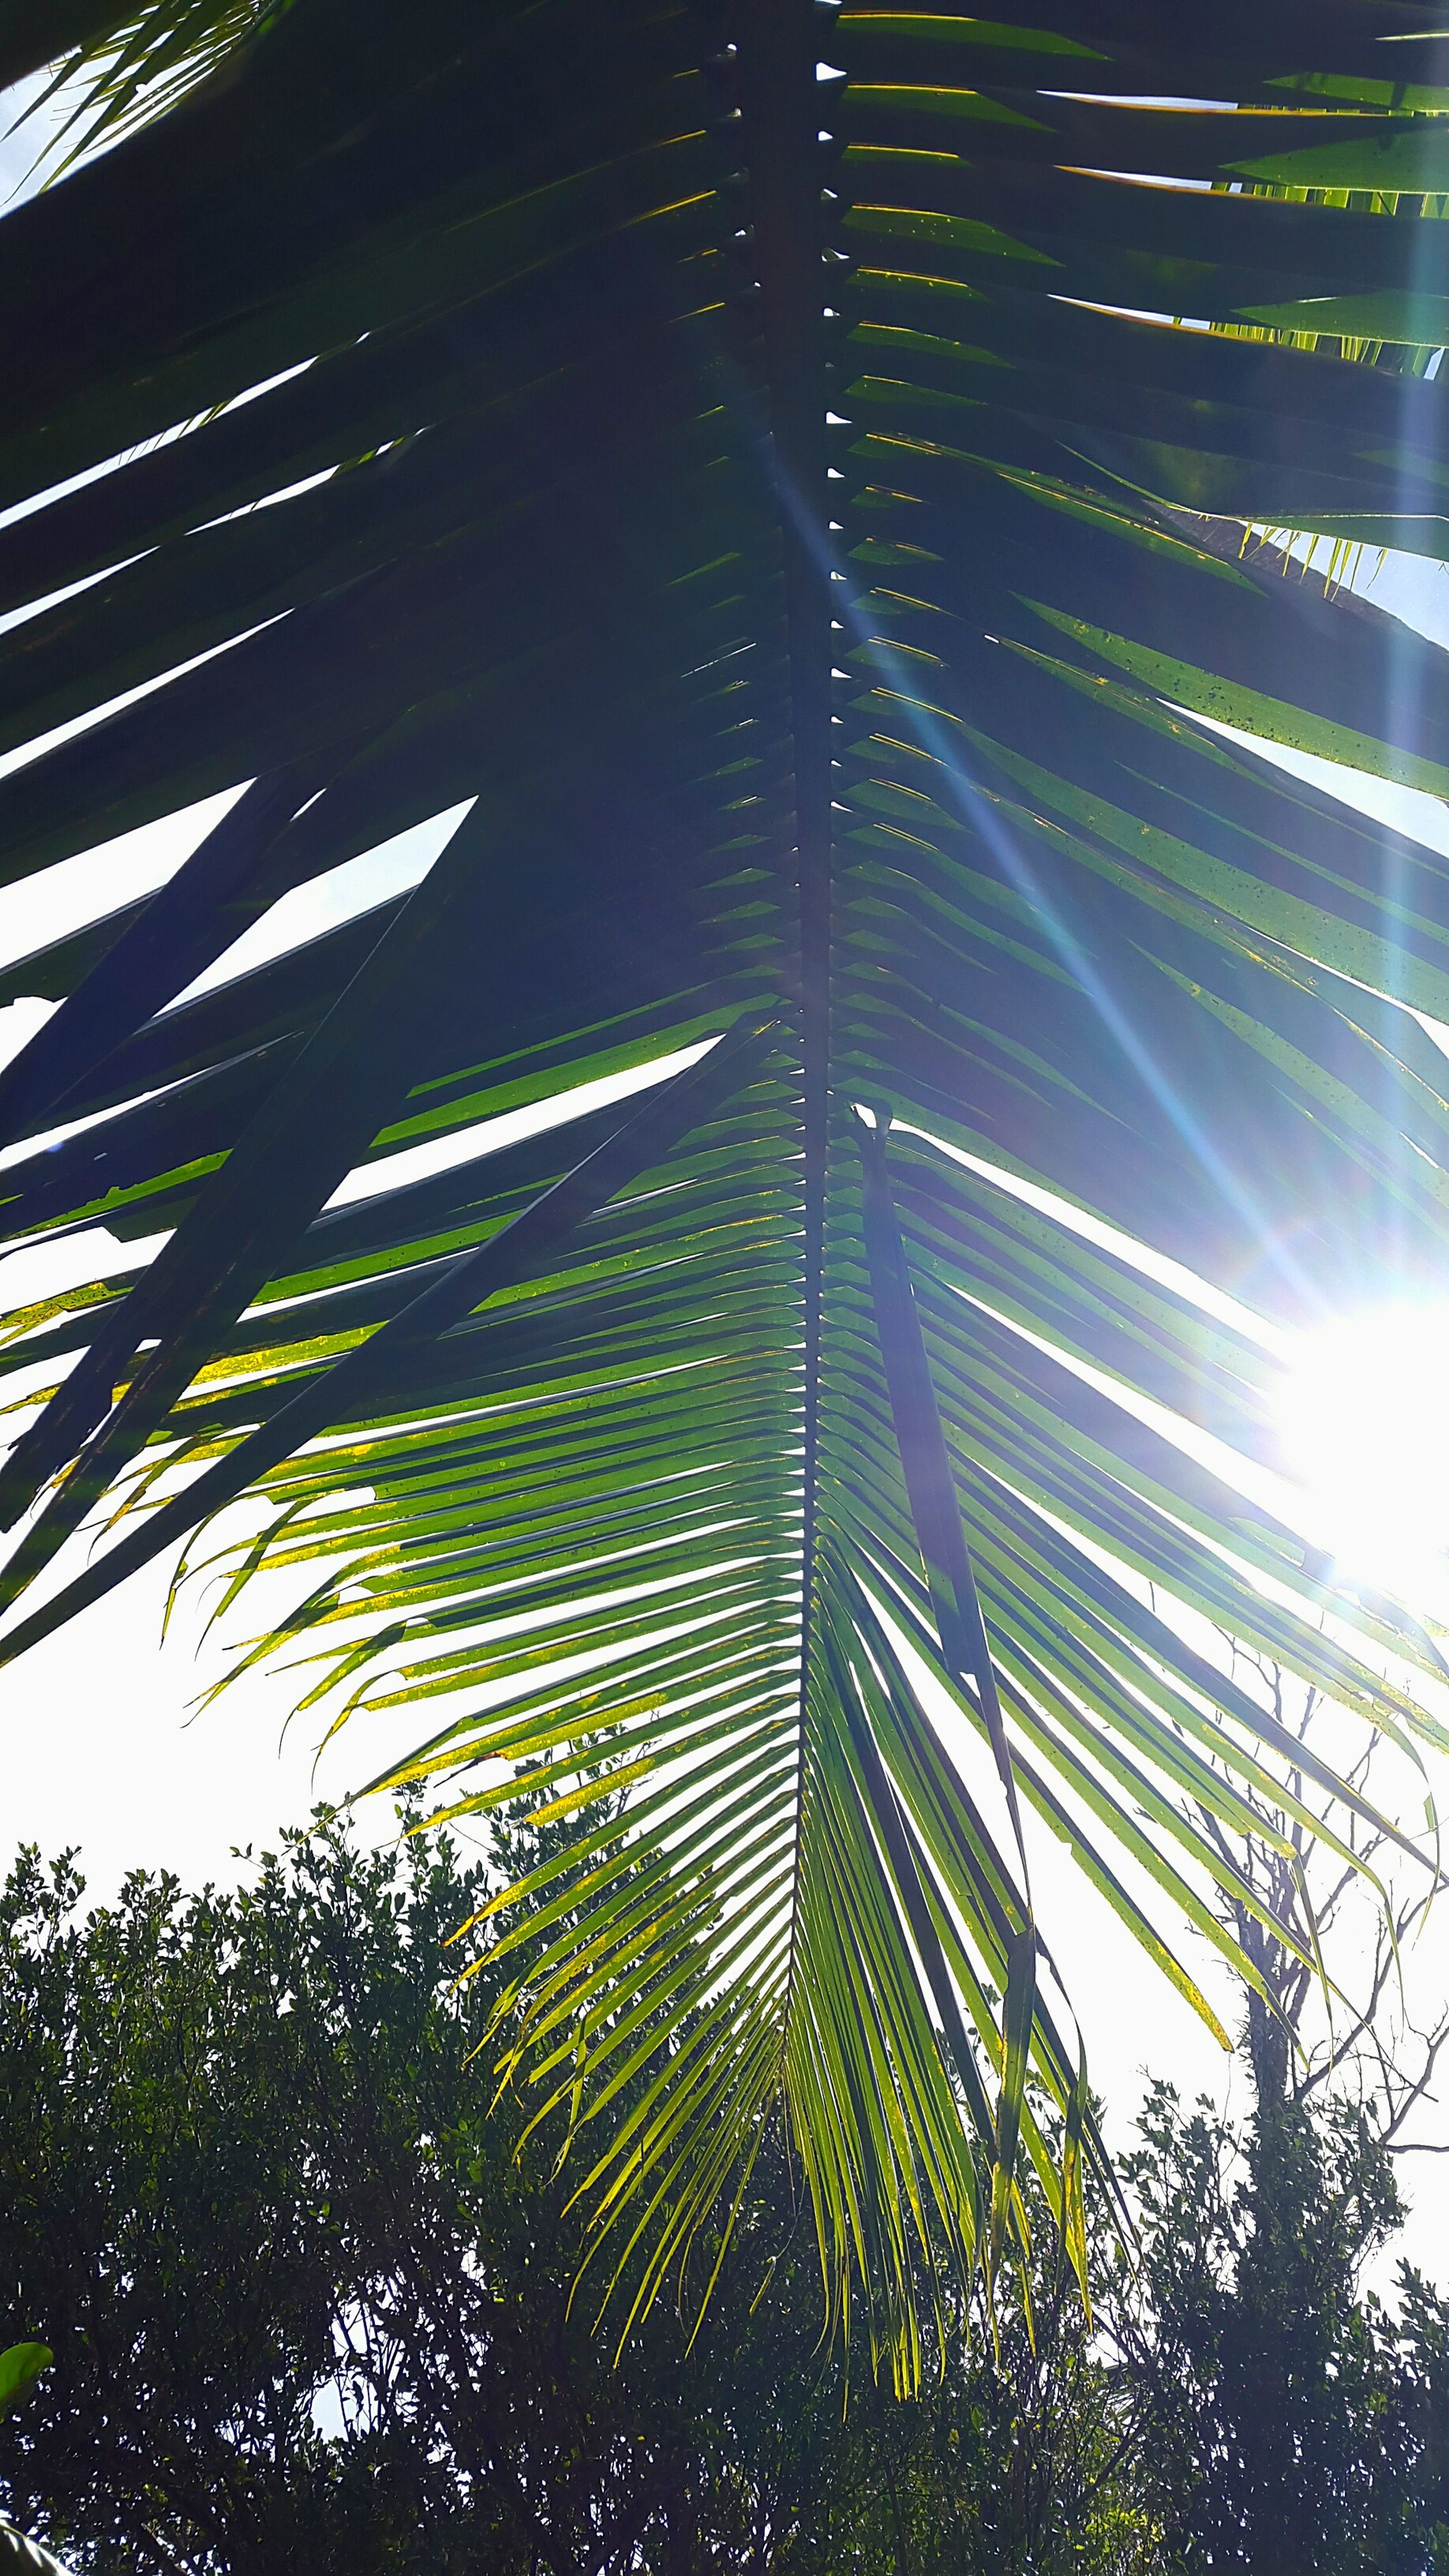 low angle view, growth, palm tree, tree, leaf, palm leaf, green color, nature, tall - high, sunlight, outdoors, beauty in nature, no people, day, sky, tranquility, branch, tree trunk, clear sky